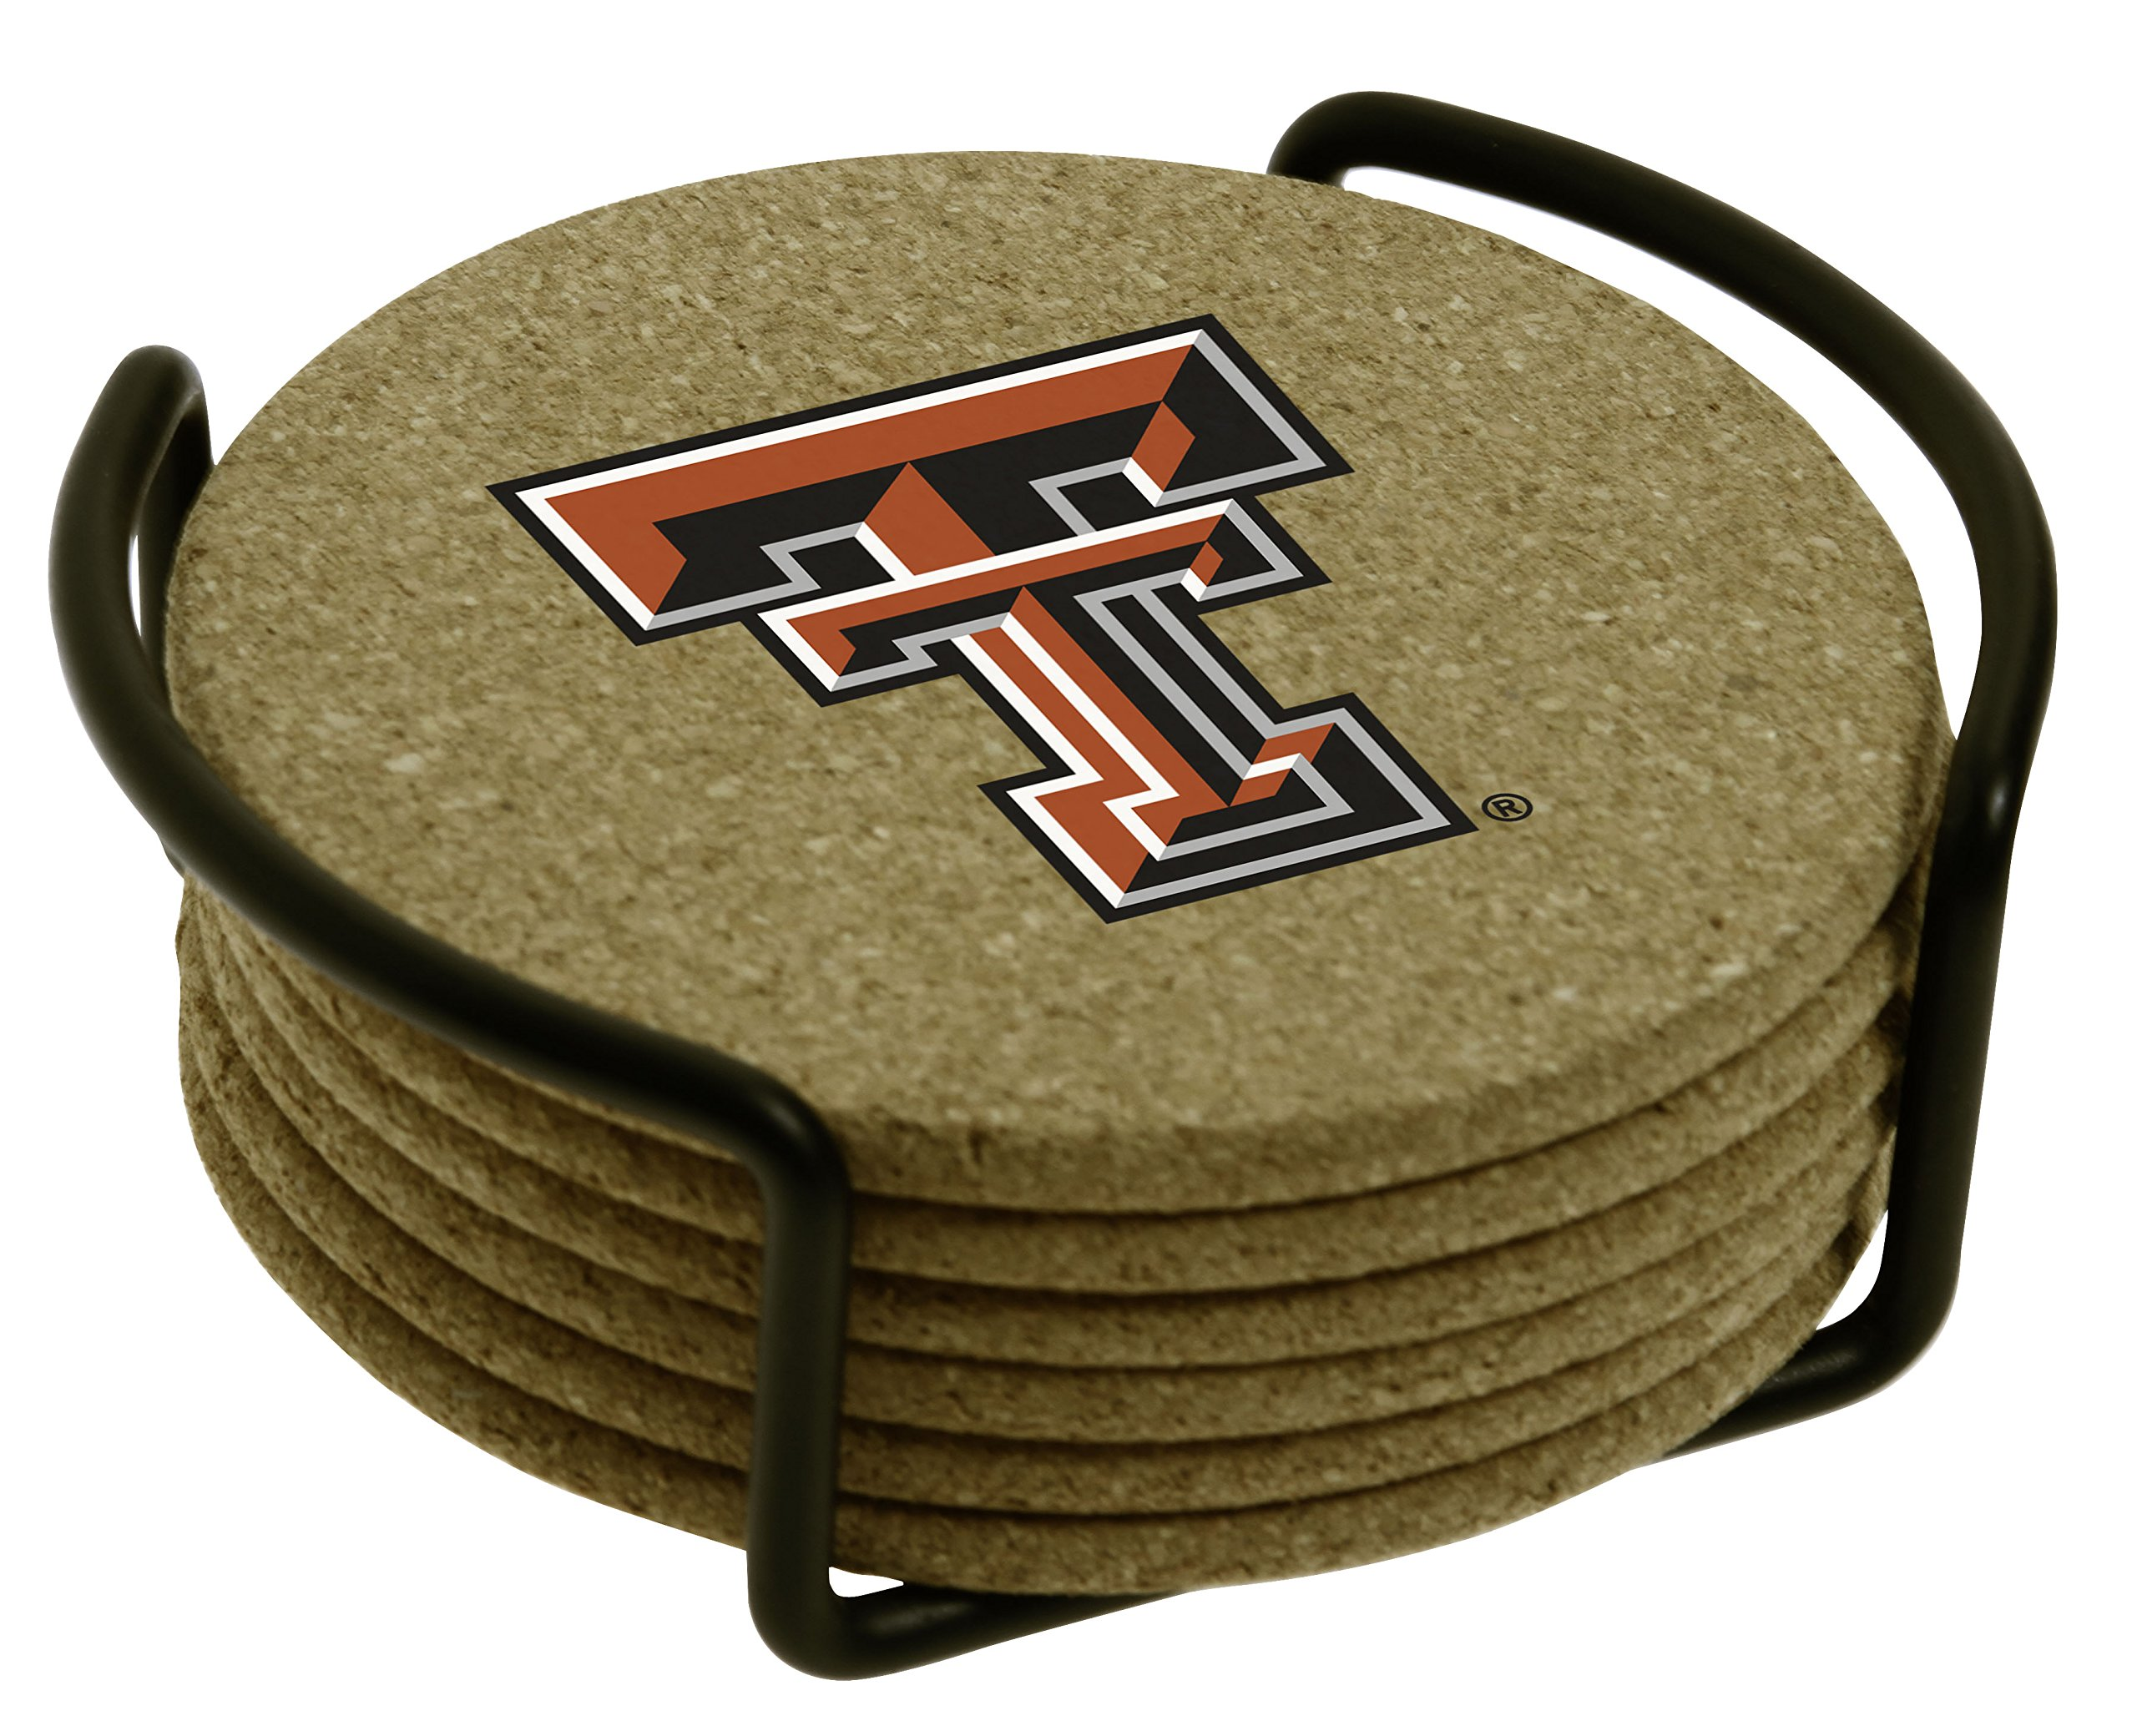 Thirstystone Texas Tech University with Holder Included Cork Gift Set